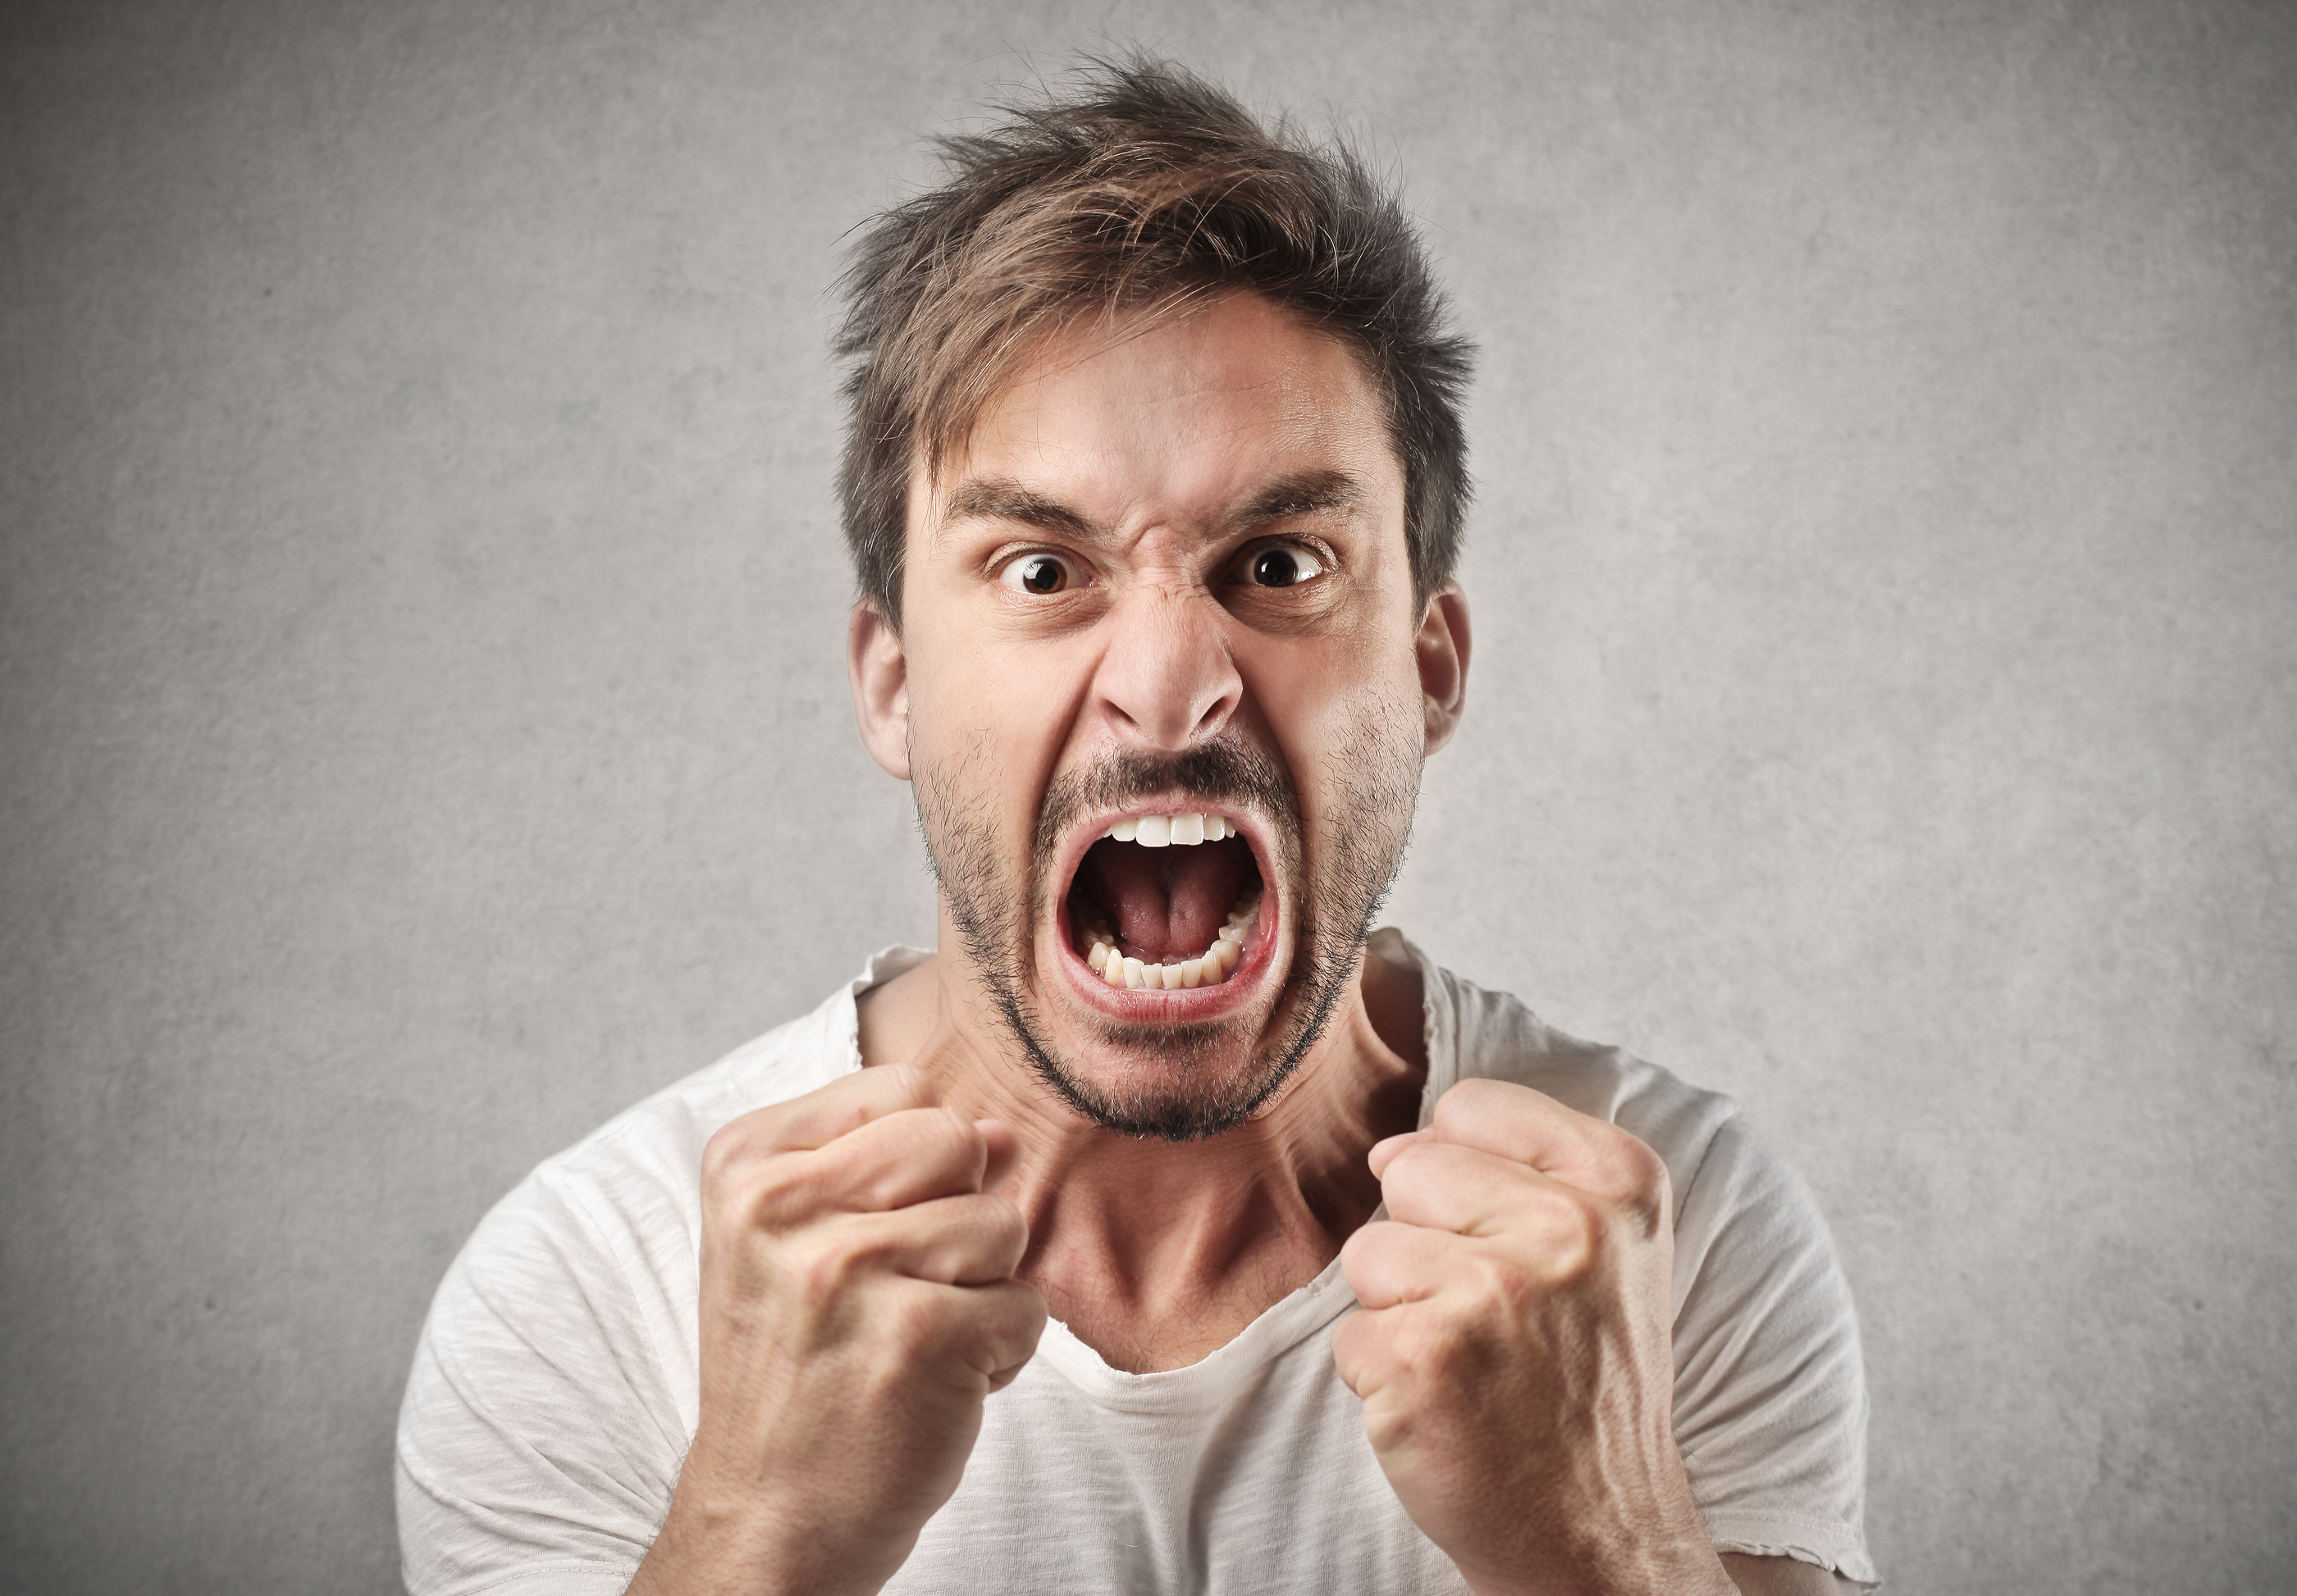 https://i0.wp.com/www.johnbarrettblog.com/wp-content/uploads/2013/11/bigstock-portrait-of-young-angry-man-52068682.jpg